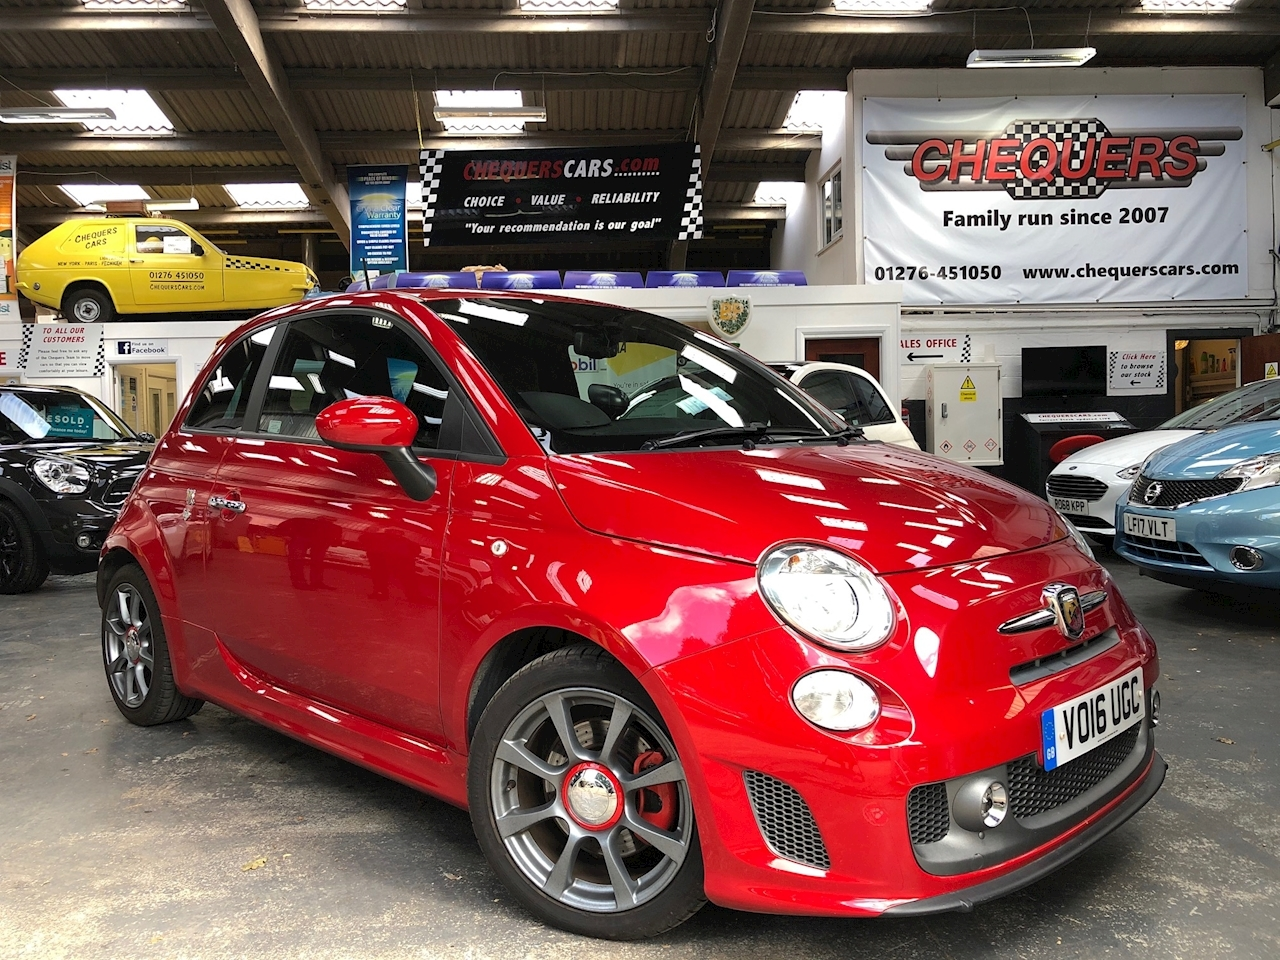 Abarth 500 595 Turismo Hatchback 1.4 Manual Petrol